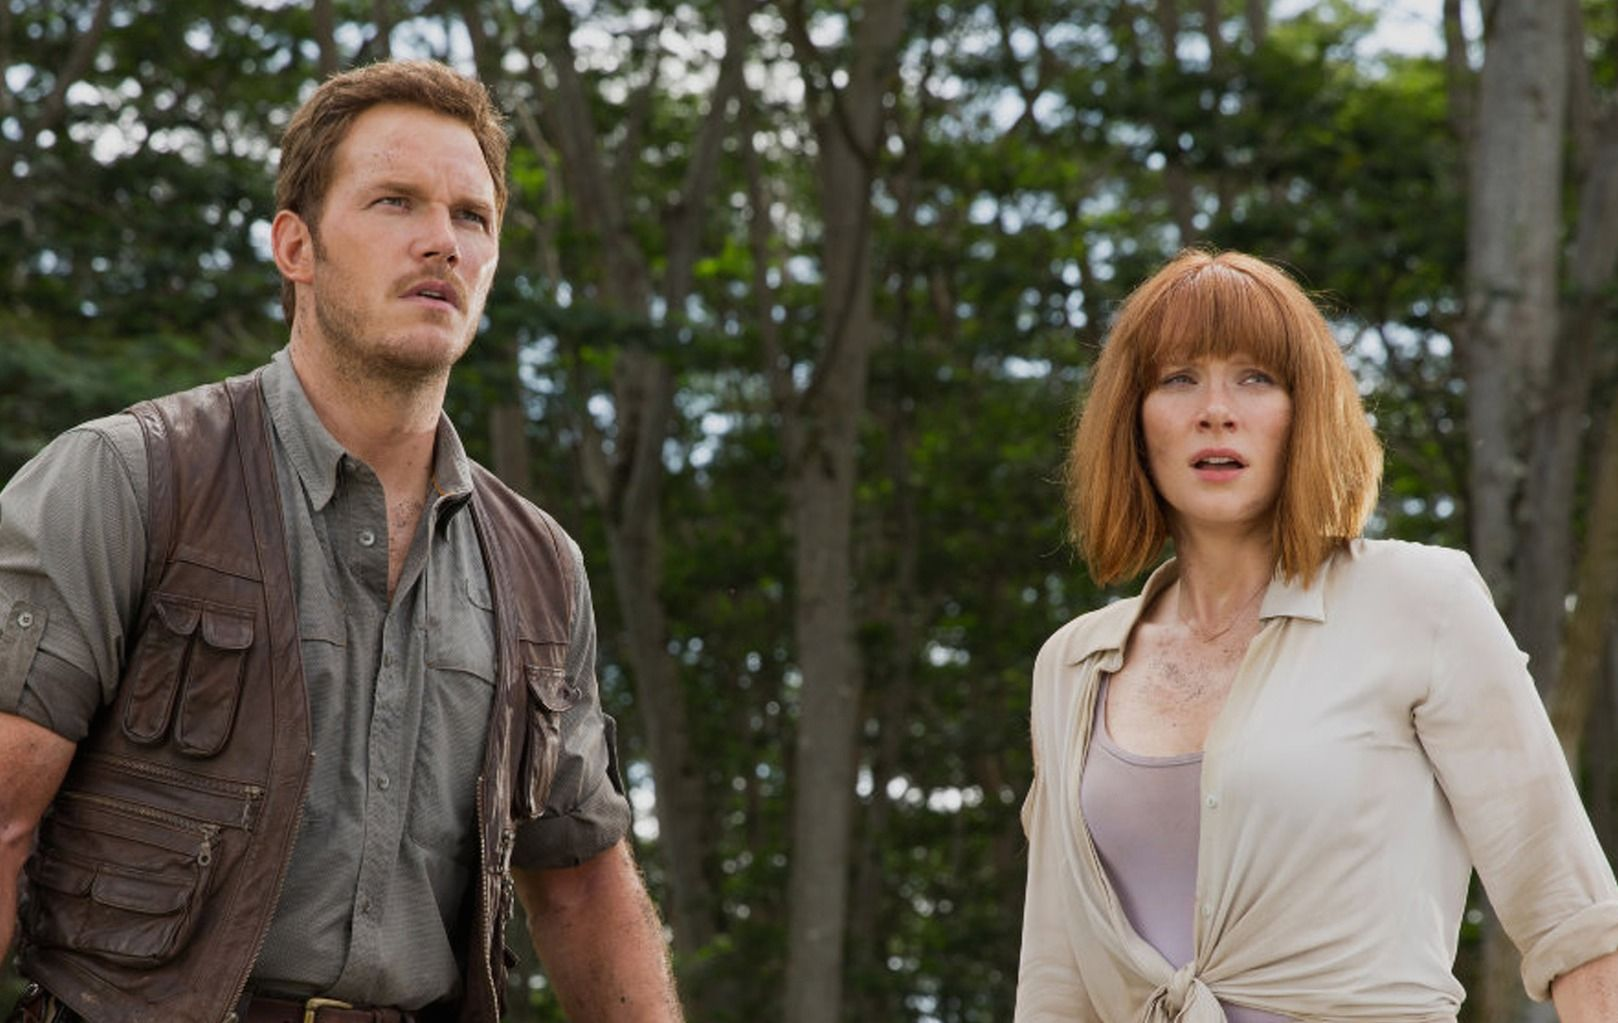 Jurassic World Star Chris Pratt Reacts To The News That Jeff Goldblum Sam Neill and Laura Dern Are Making A Comeback